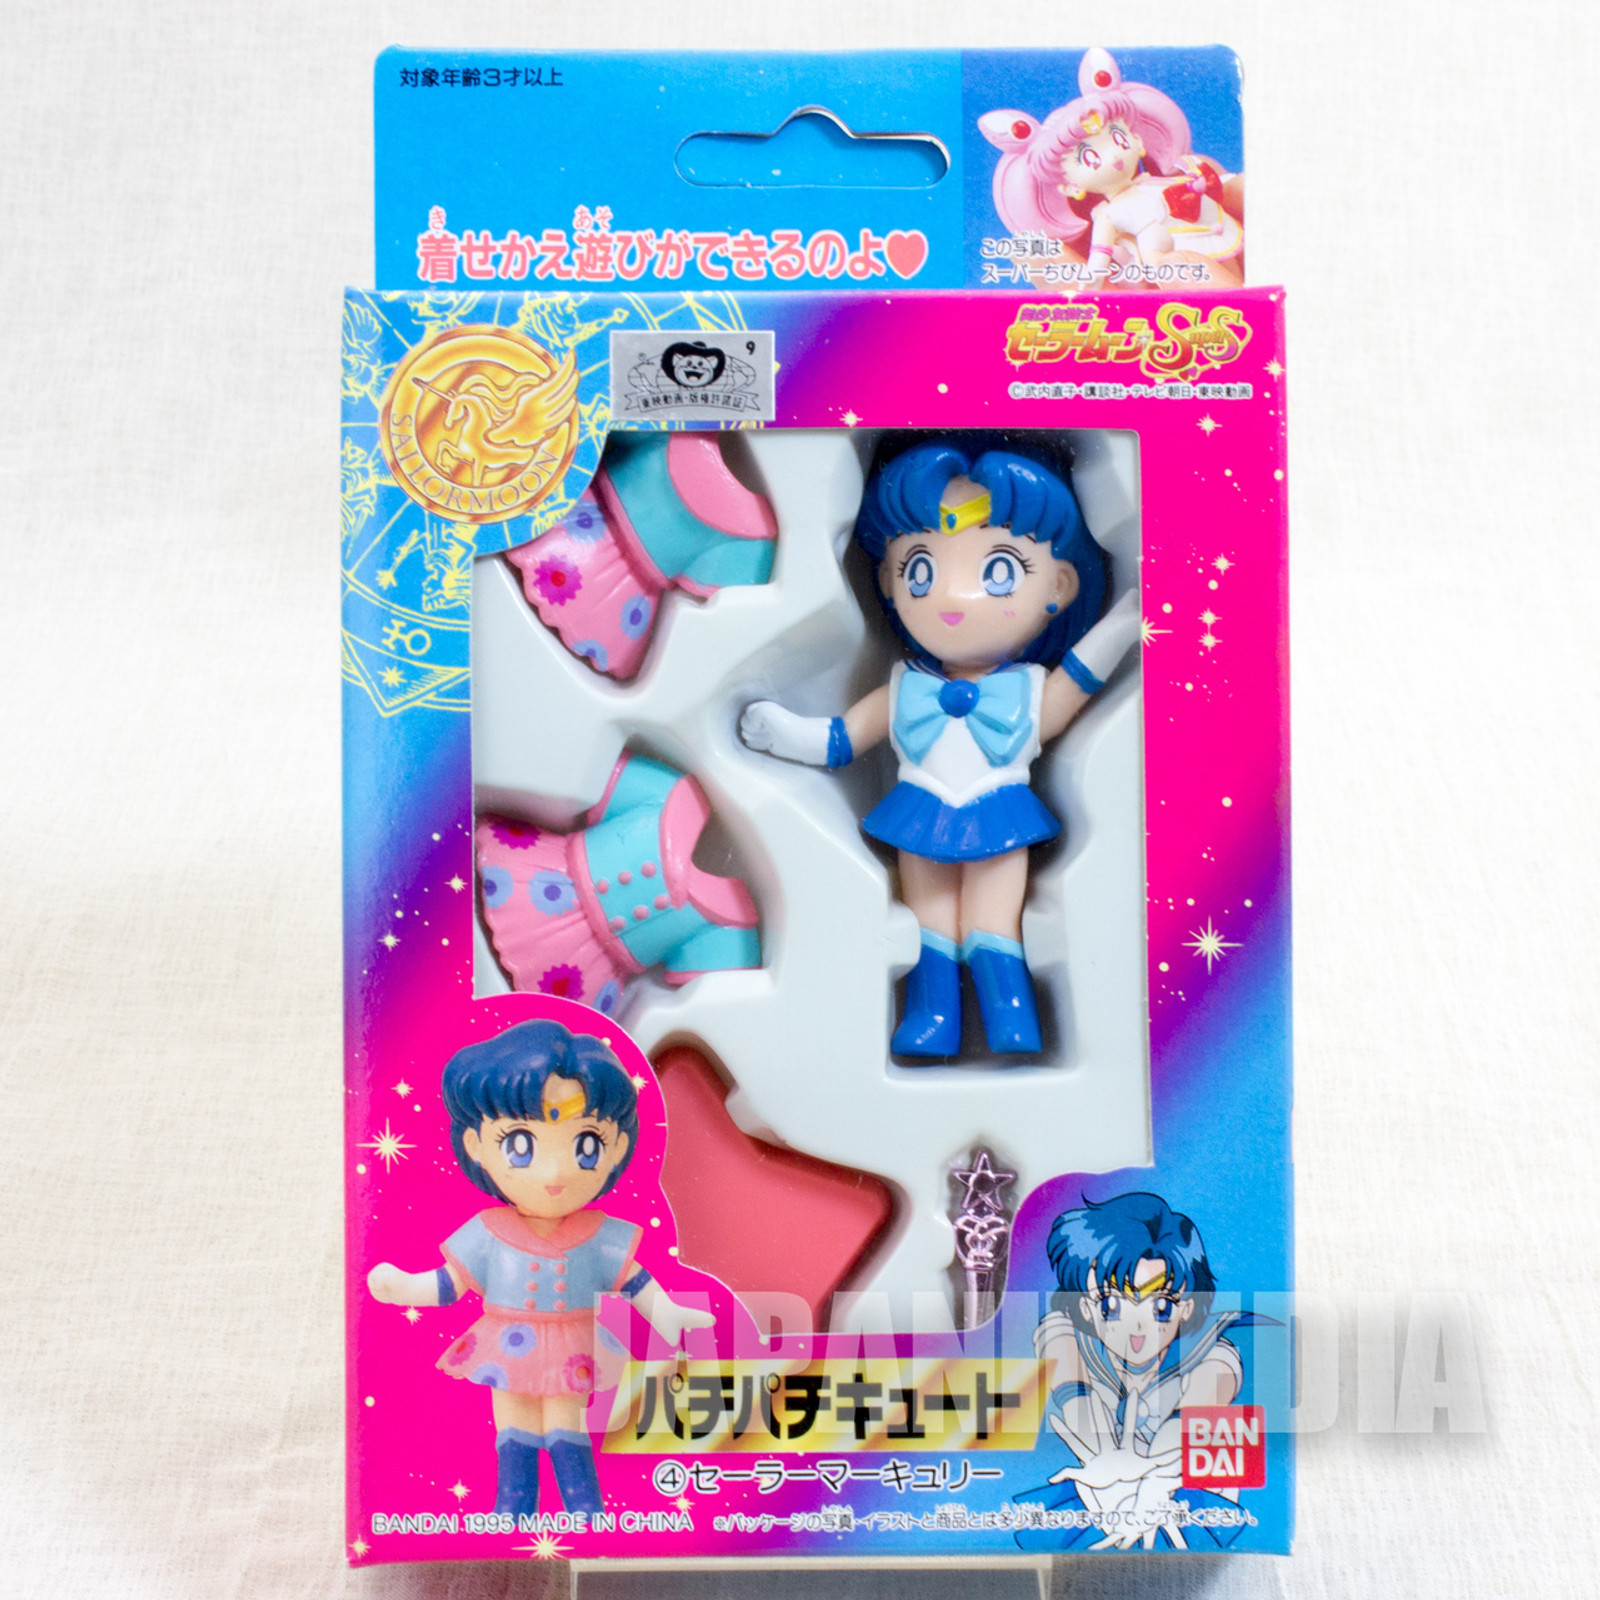 Retro RARE Sailor Moon Sailor Mercury (Ami Mizuno) PachiPachi Cute Figure BANDAI JAPAN